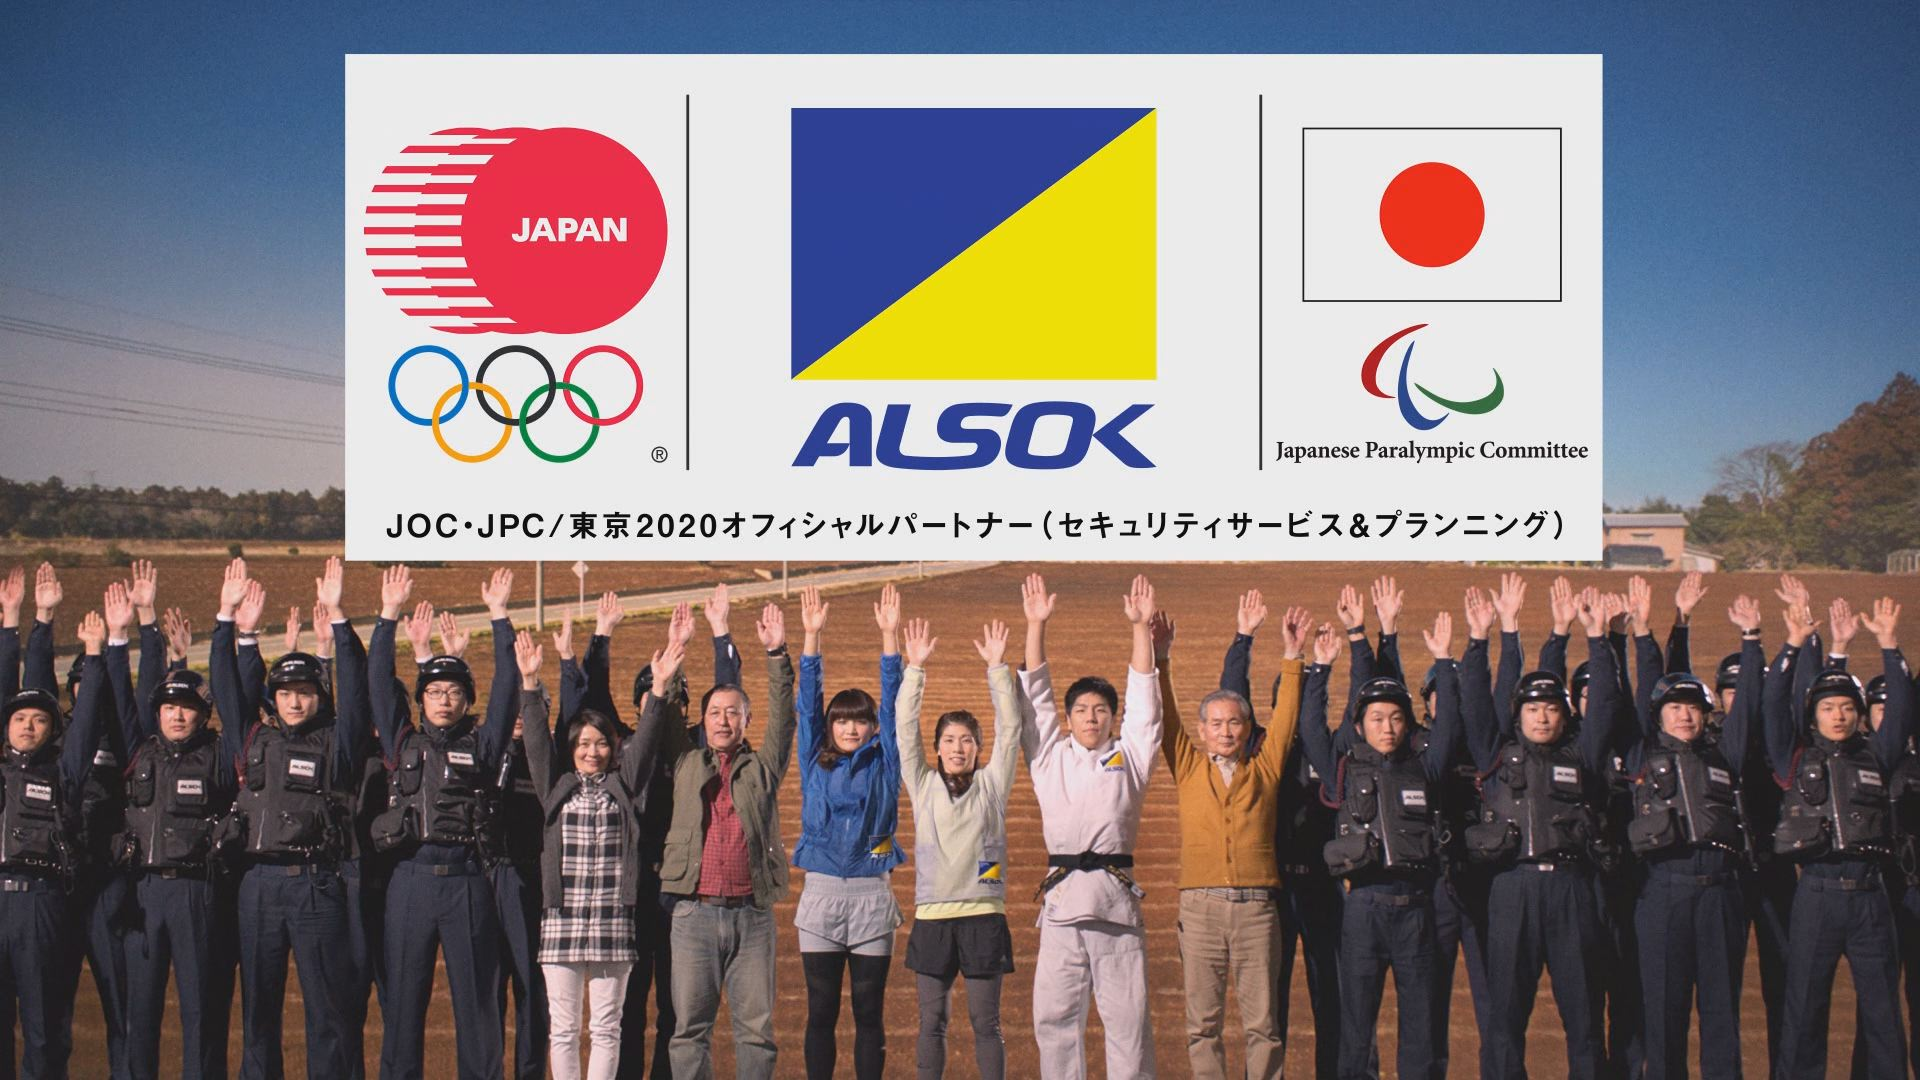 「ALSOK その想い 秋冬」篇